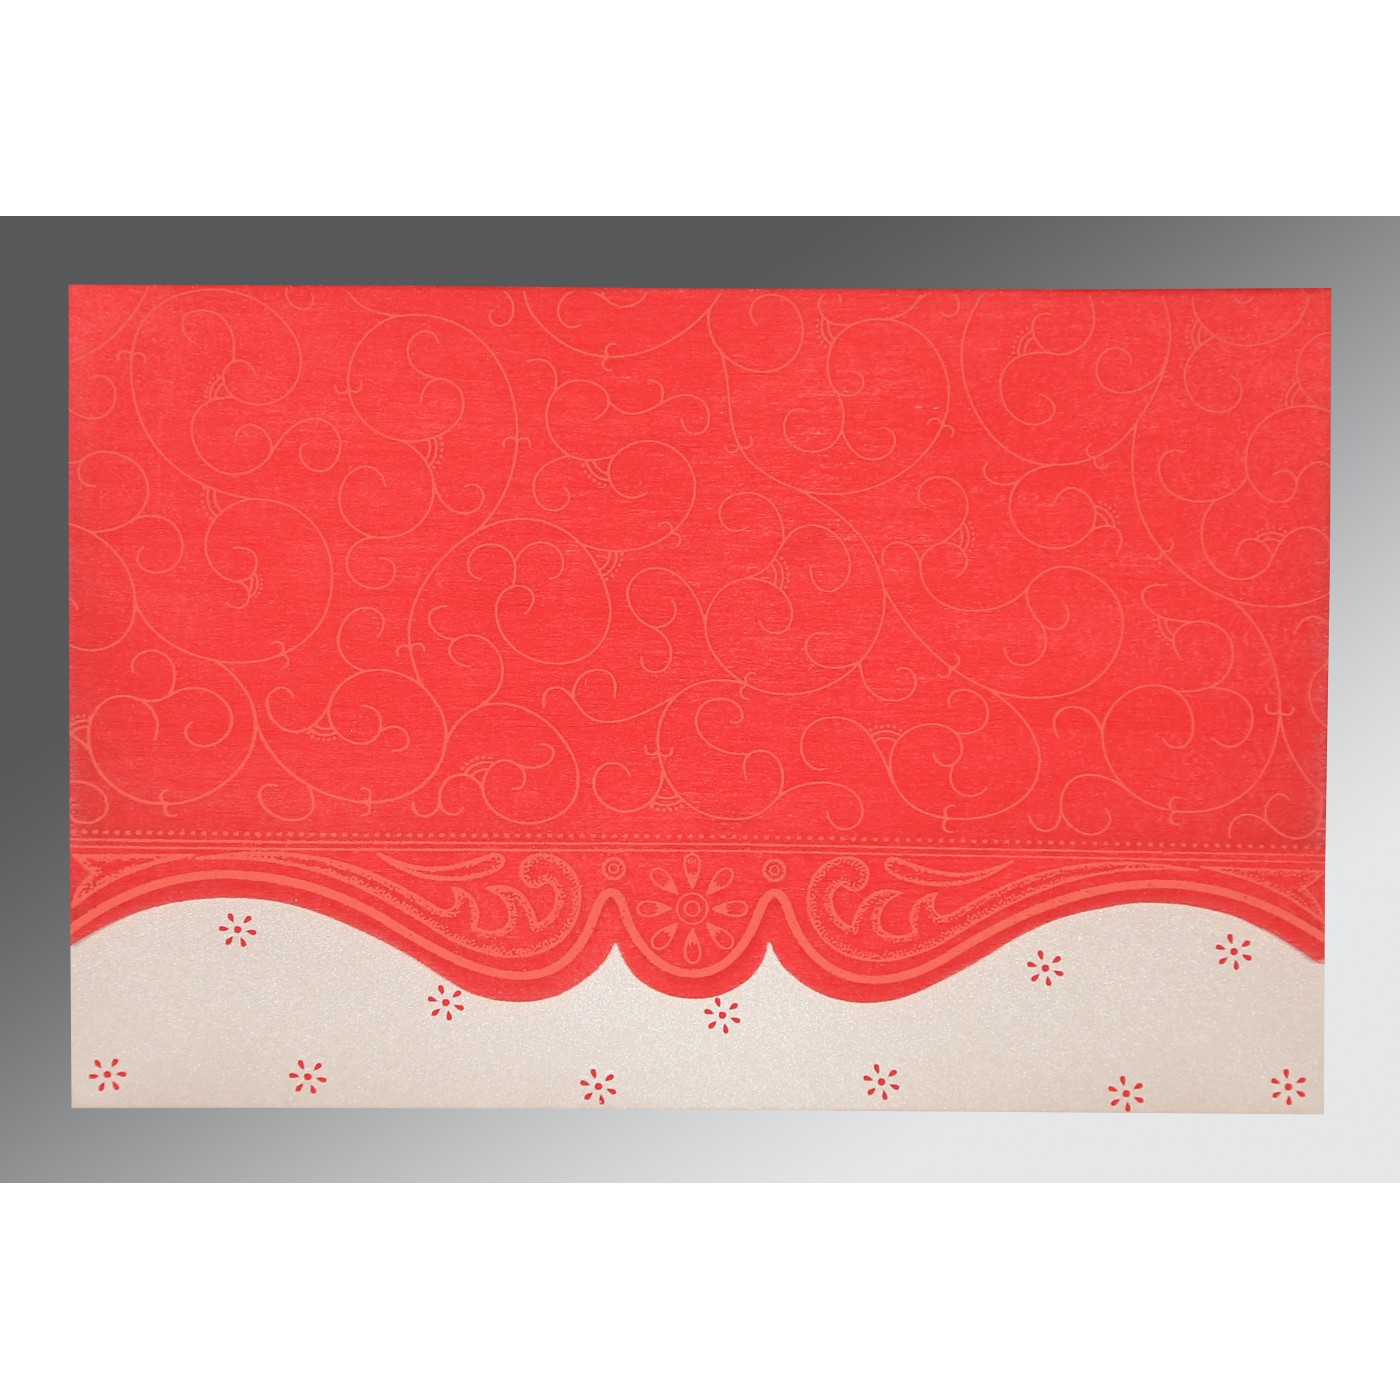 SCARLET MATTE EMBOSSED WEDDING INVITATION : IN-8221J - 123WeddingCards